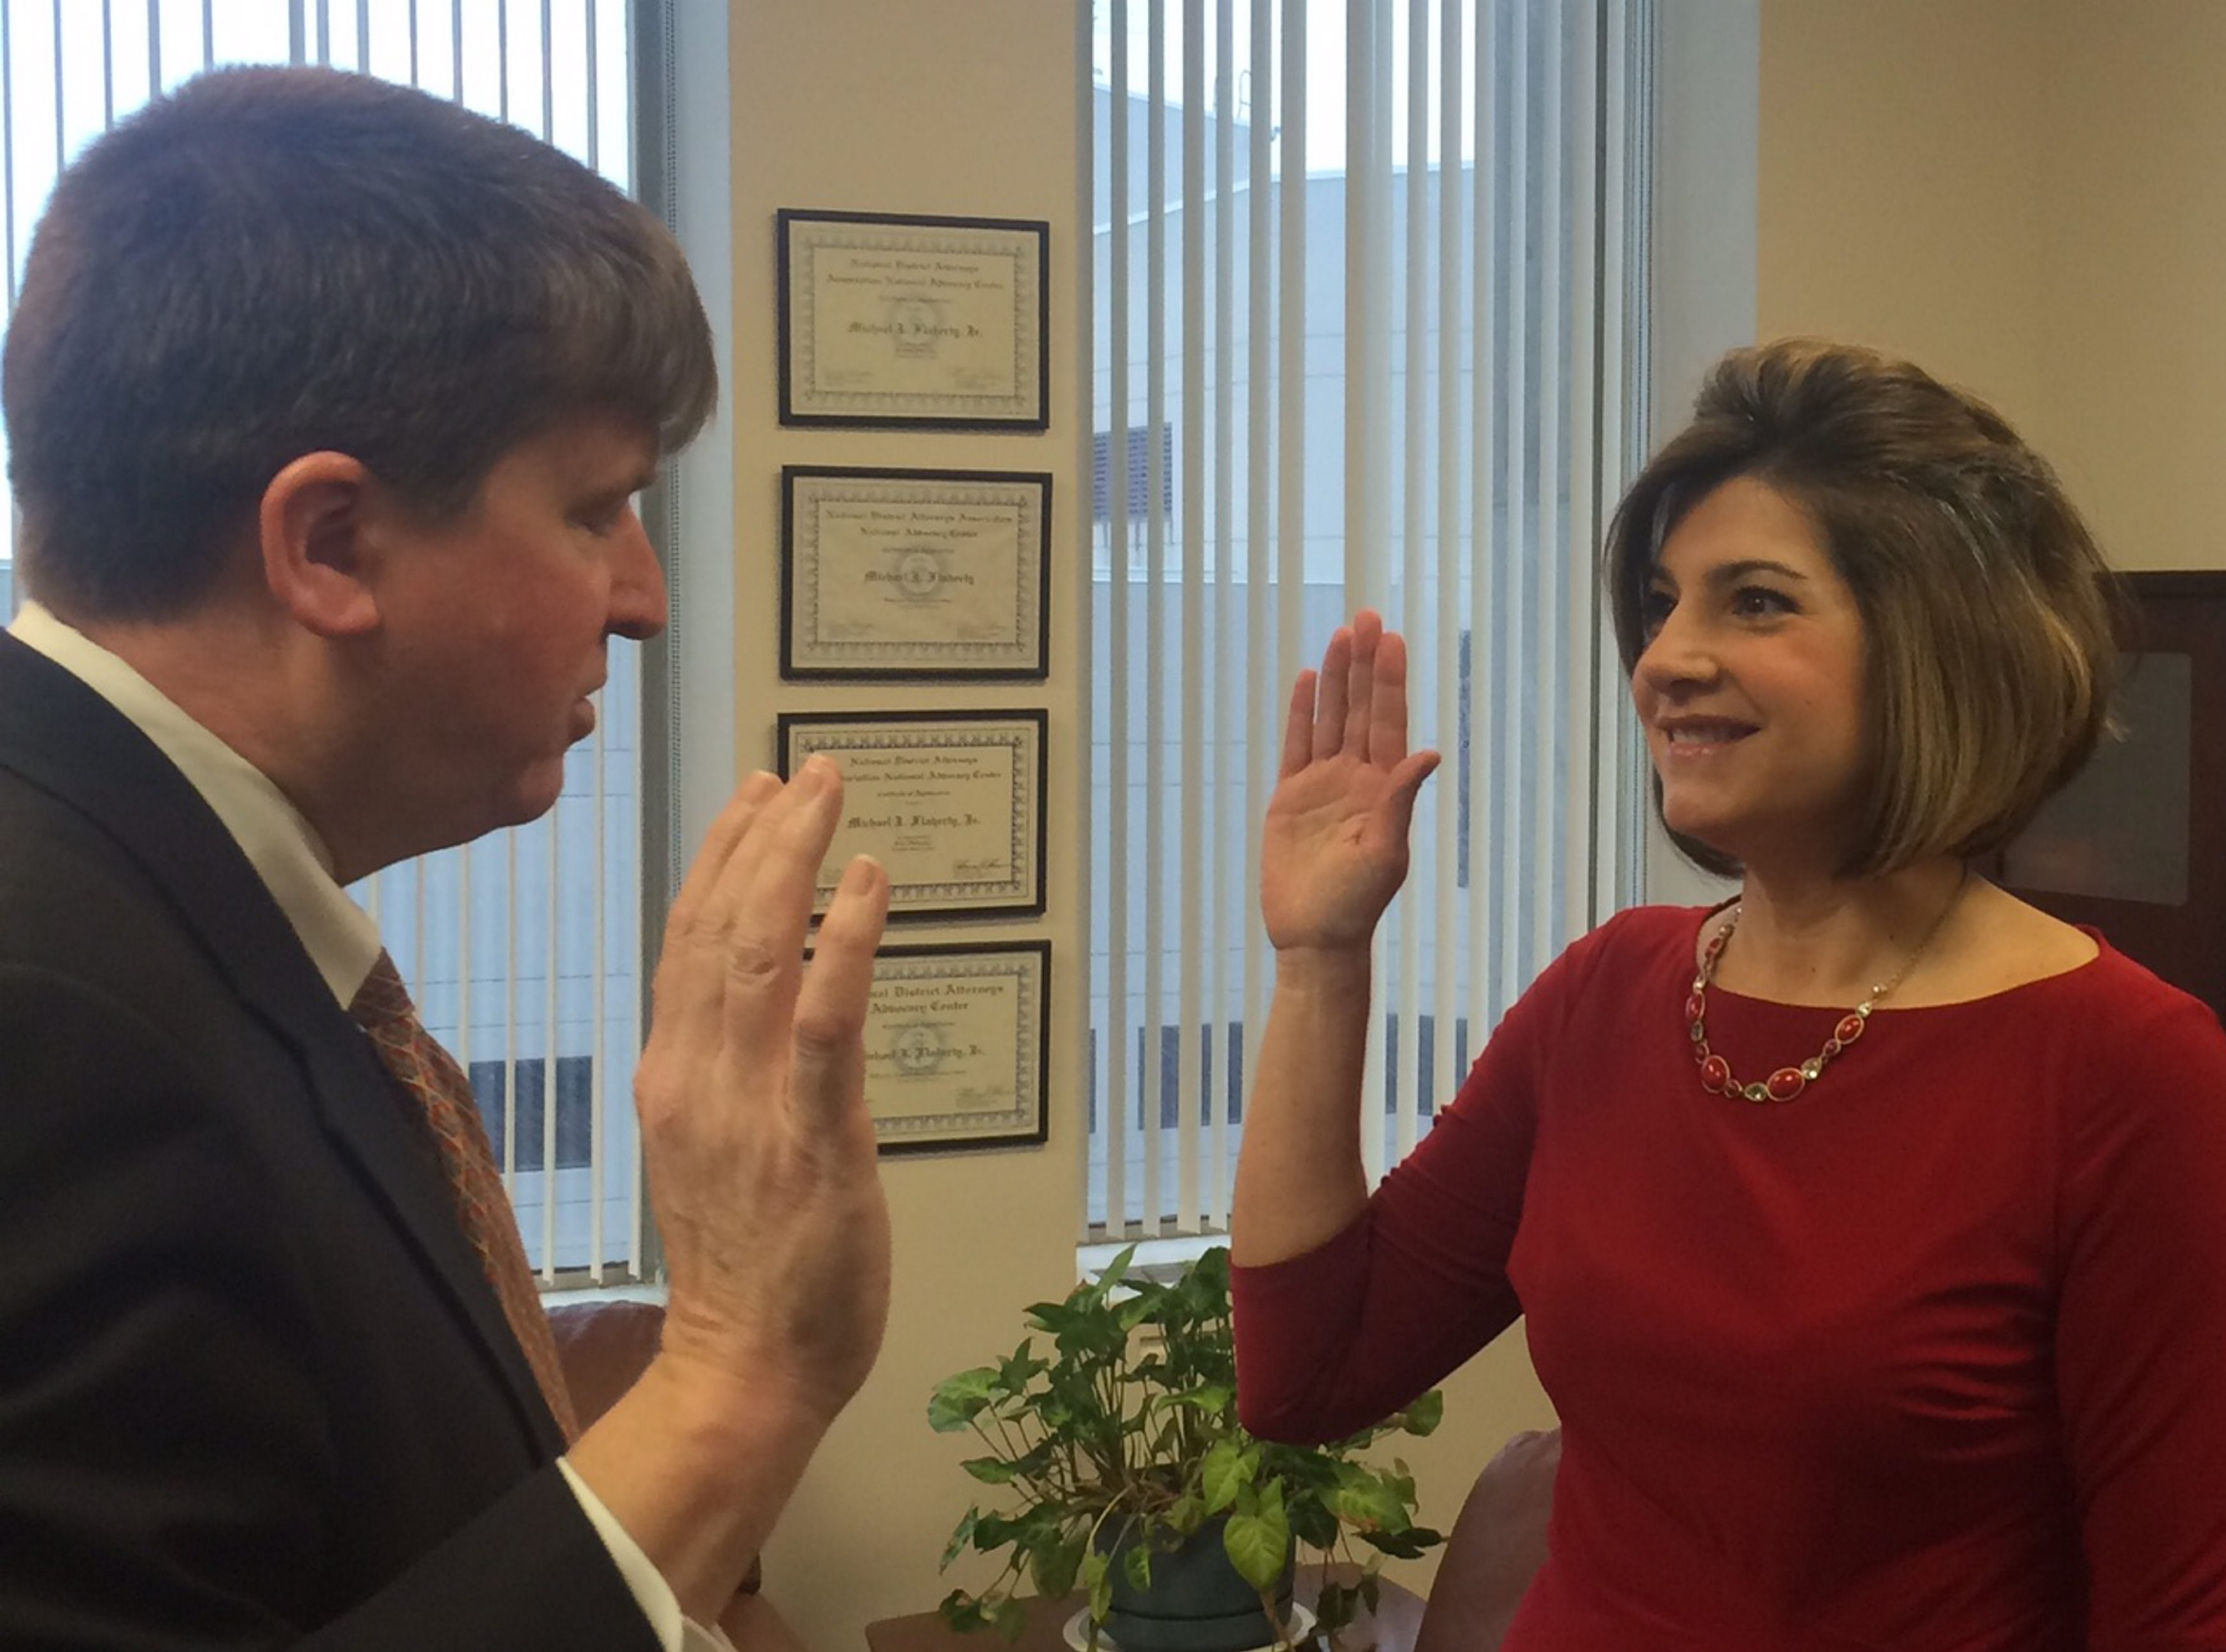 Acting DA Michael Flaherty swears in new hire, Joanna Pasceri, as the department's public information officer, a newly created post.